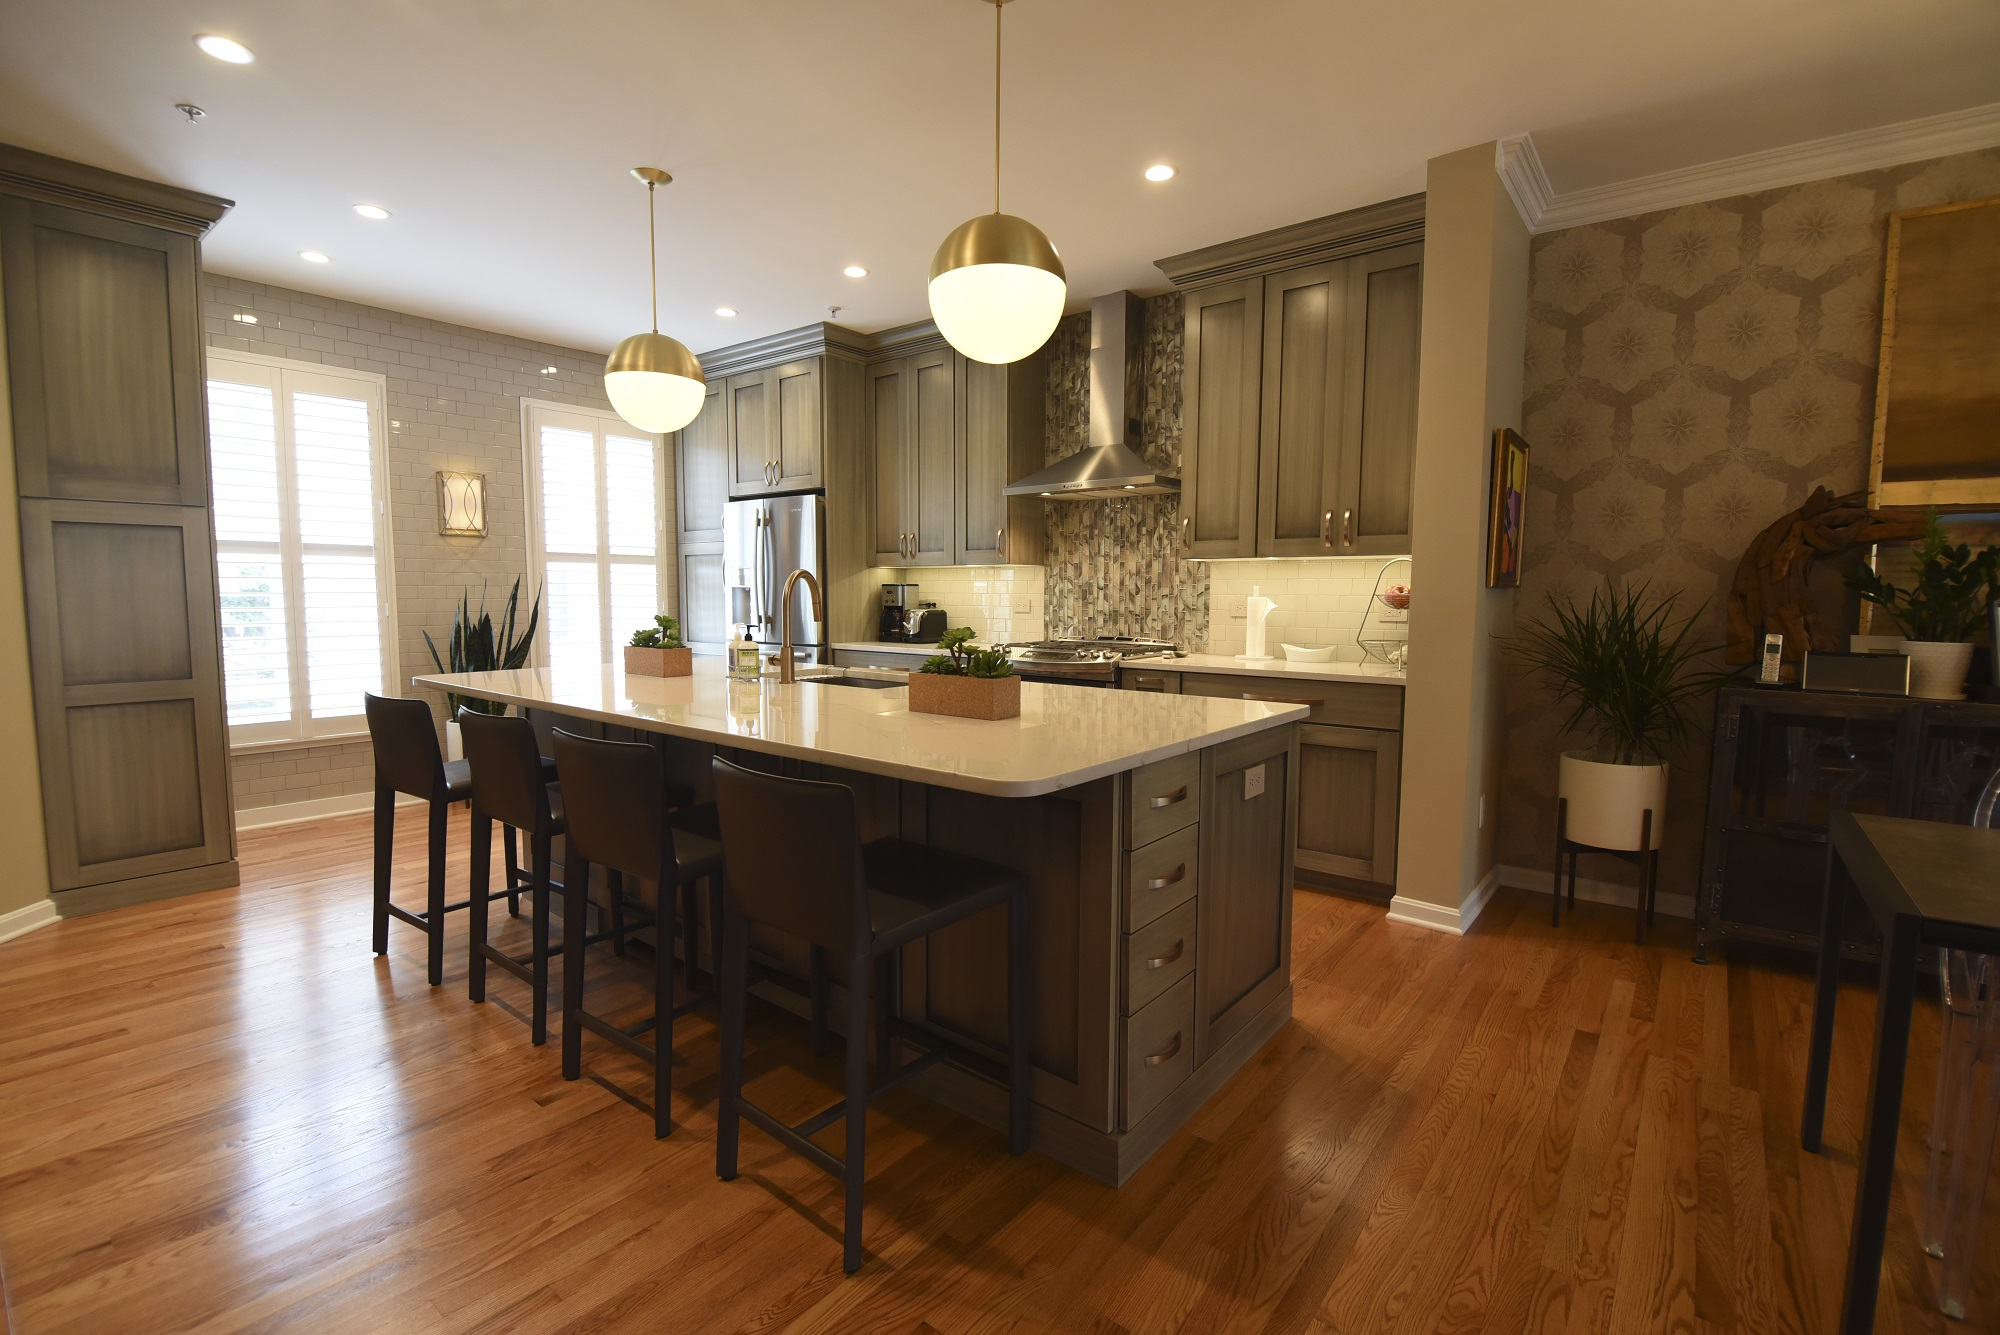 B-Chic-Interiors-Maryland-Kitchen-Diner